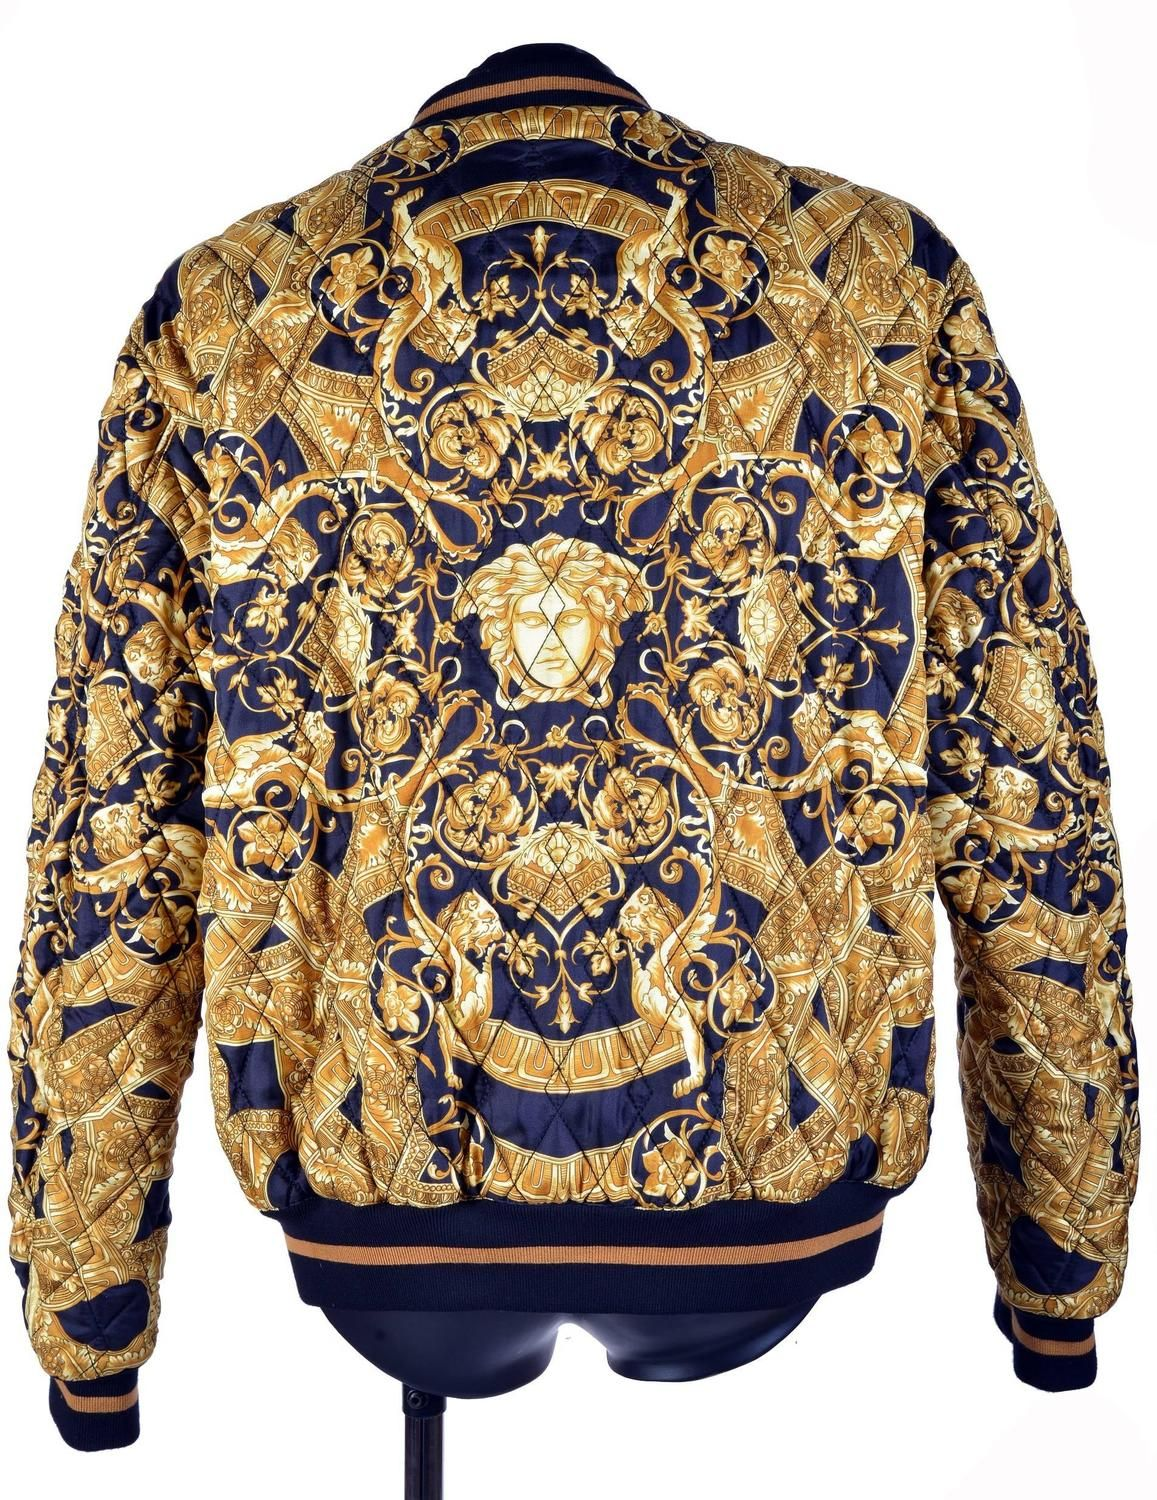 76f0cf31 35th ANNIVERSARY VERSACE QUILTED SILK BOMBER JACKET | Style in 2019 ...